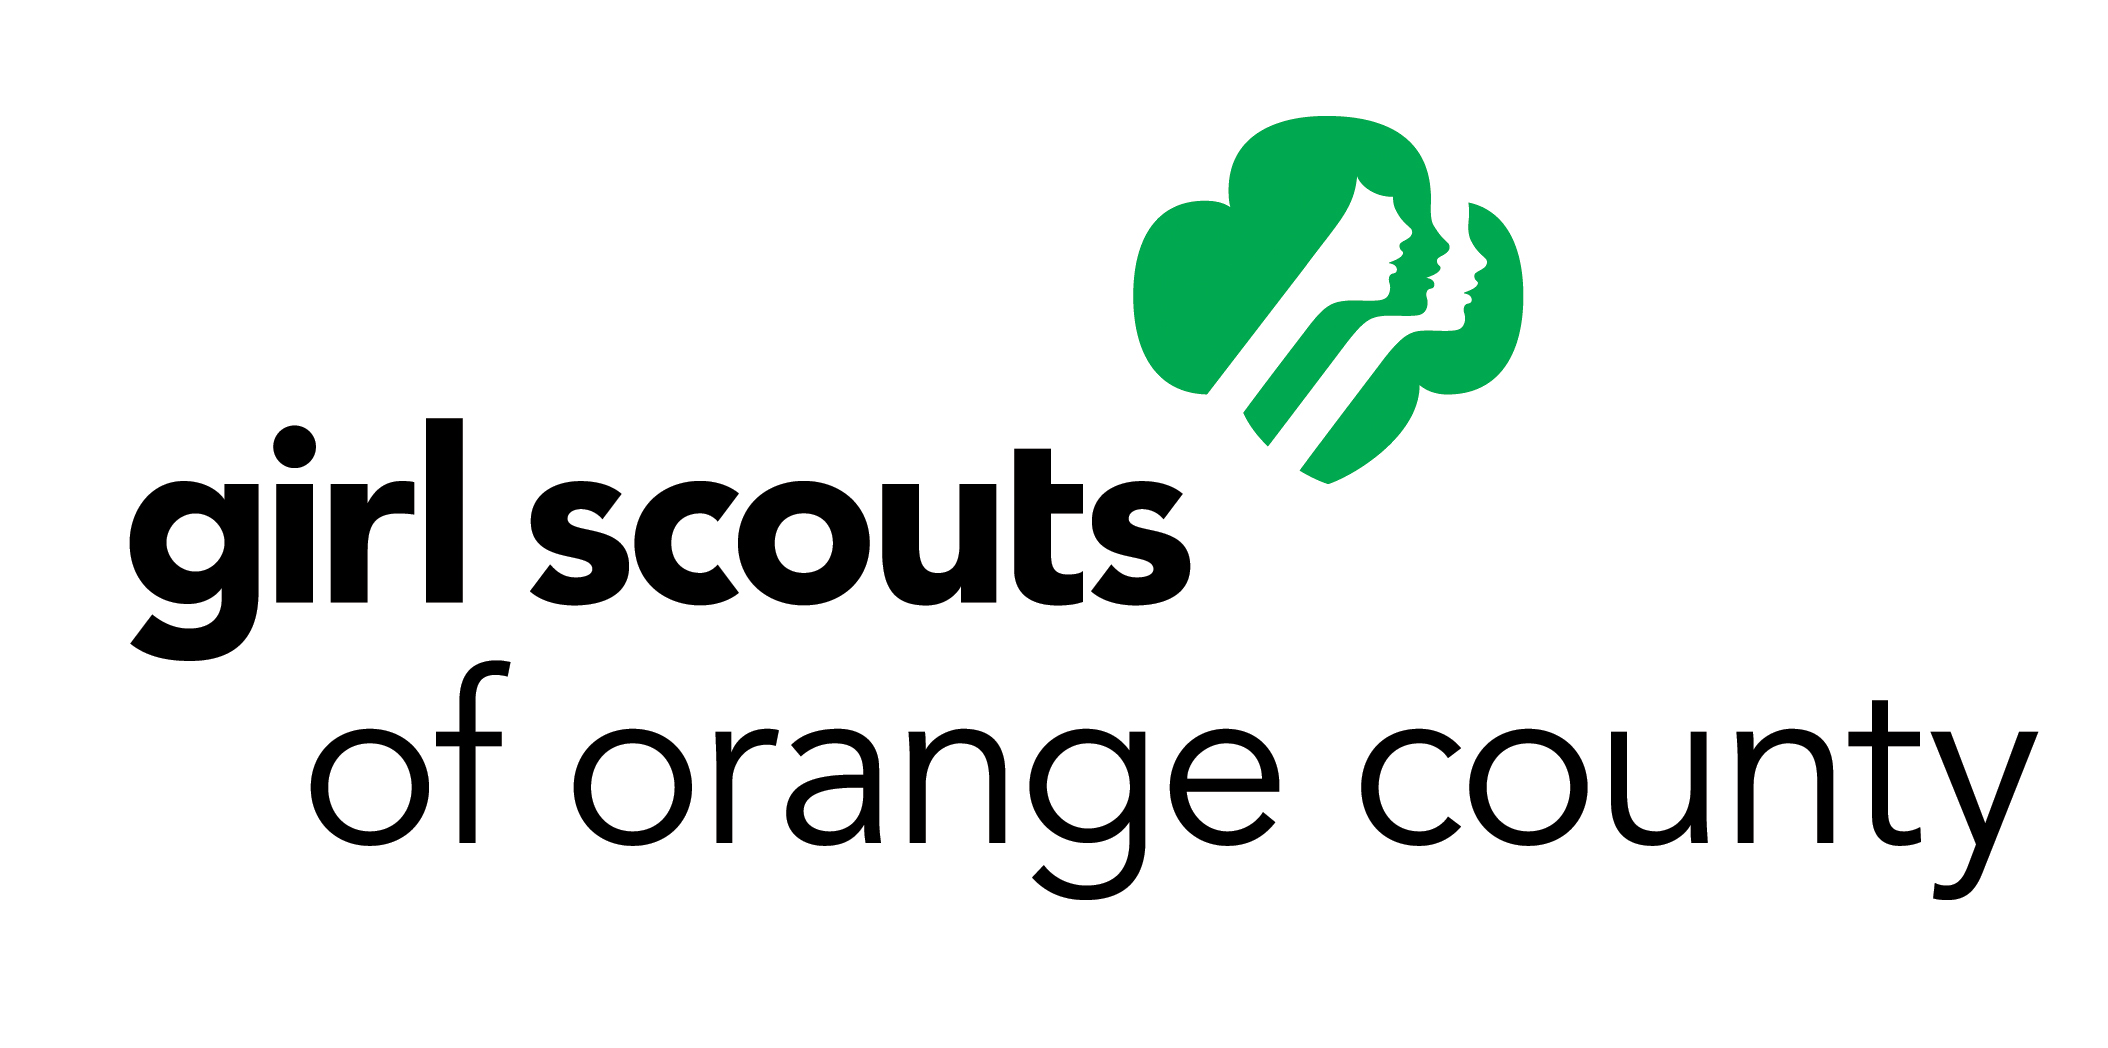 Calling all Frozen cosplayers, the Girl Scouts need your